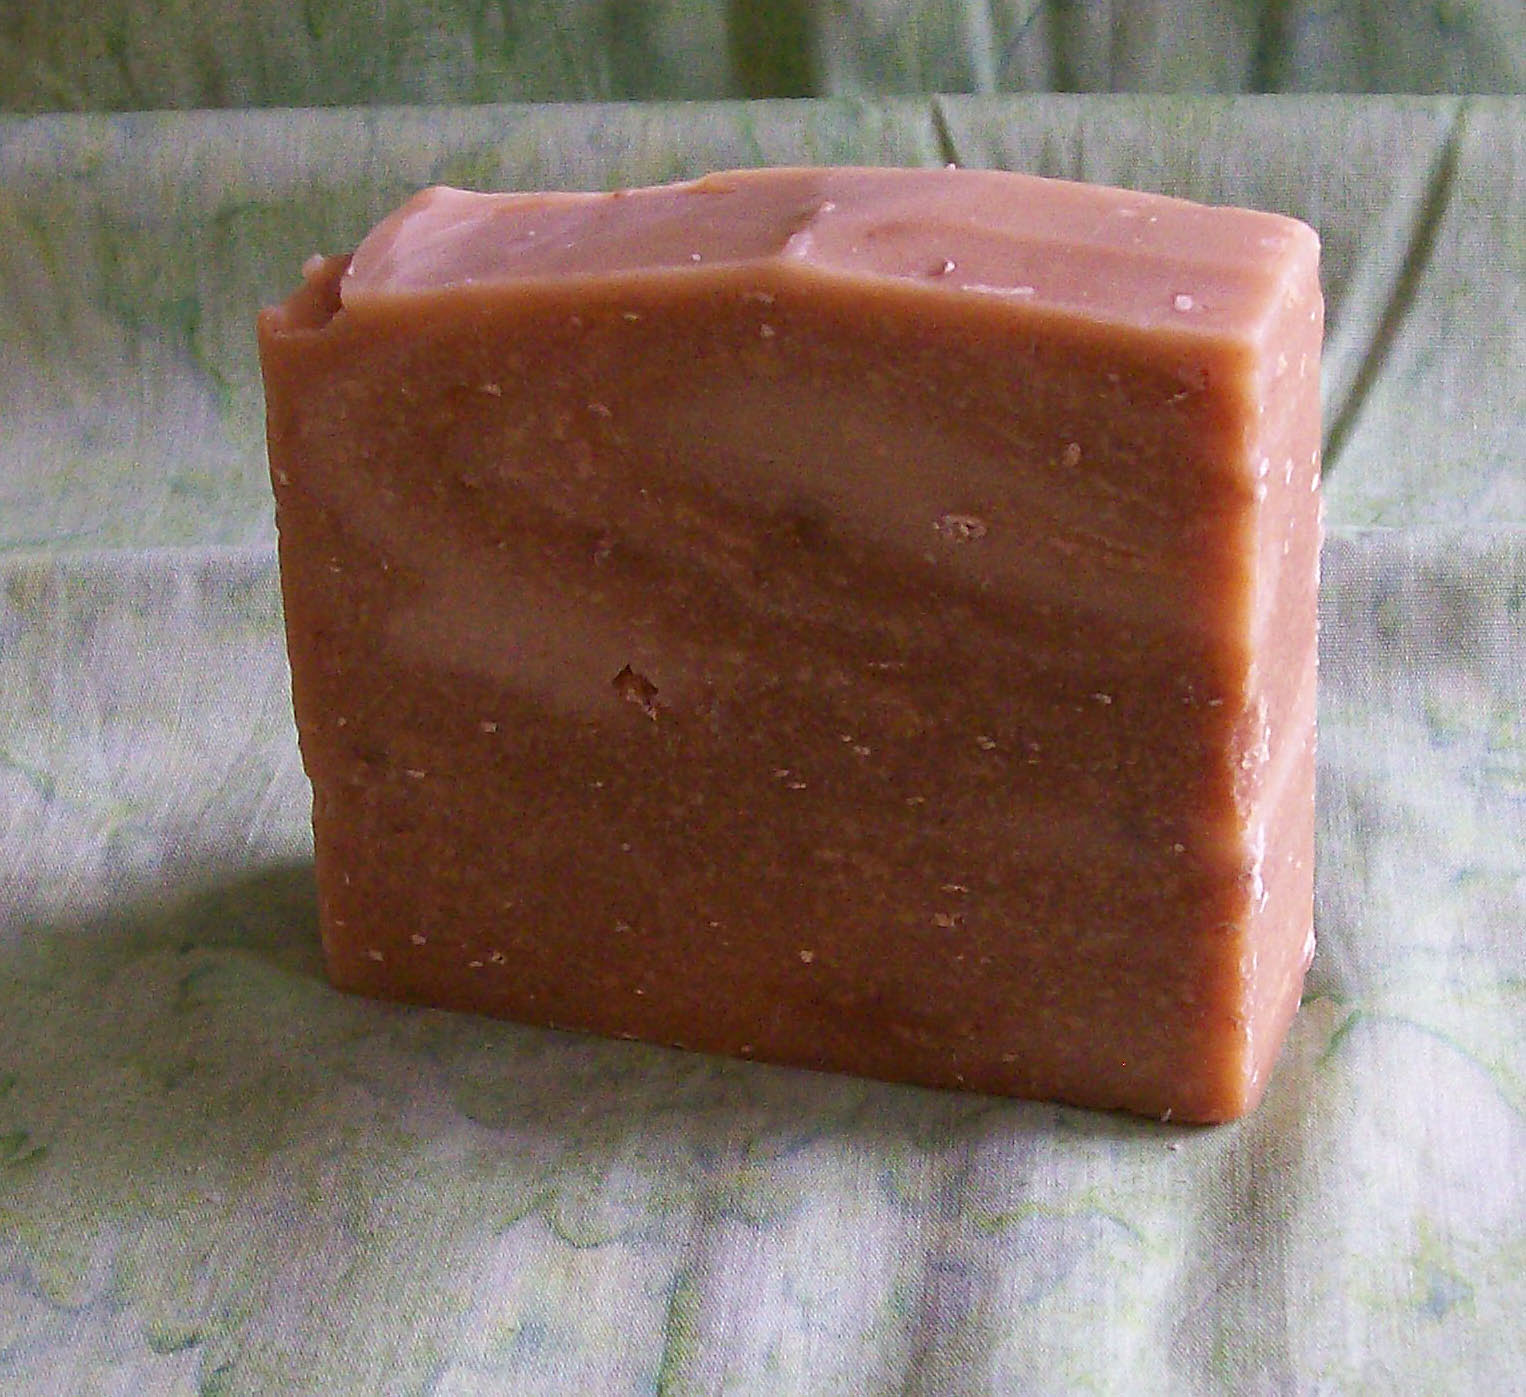 oatmeal milk honey soap $ 6 50 soap special purchase 6 bars and you ...